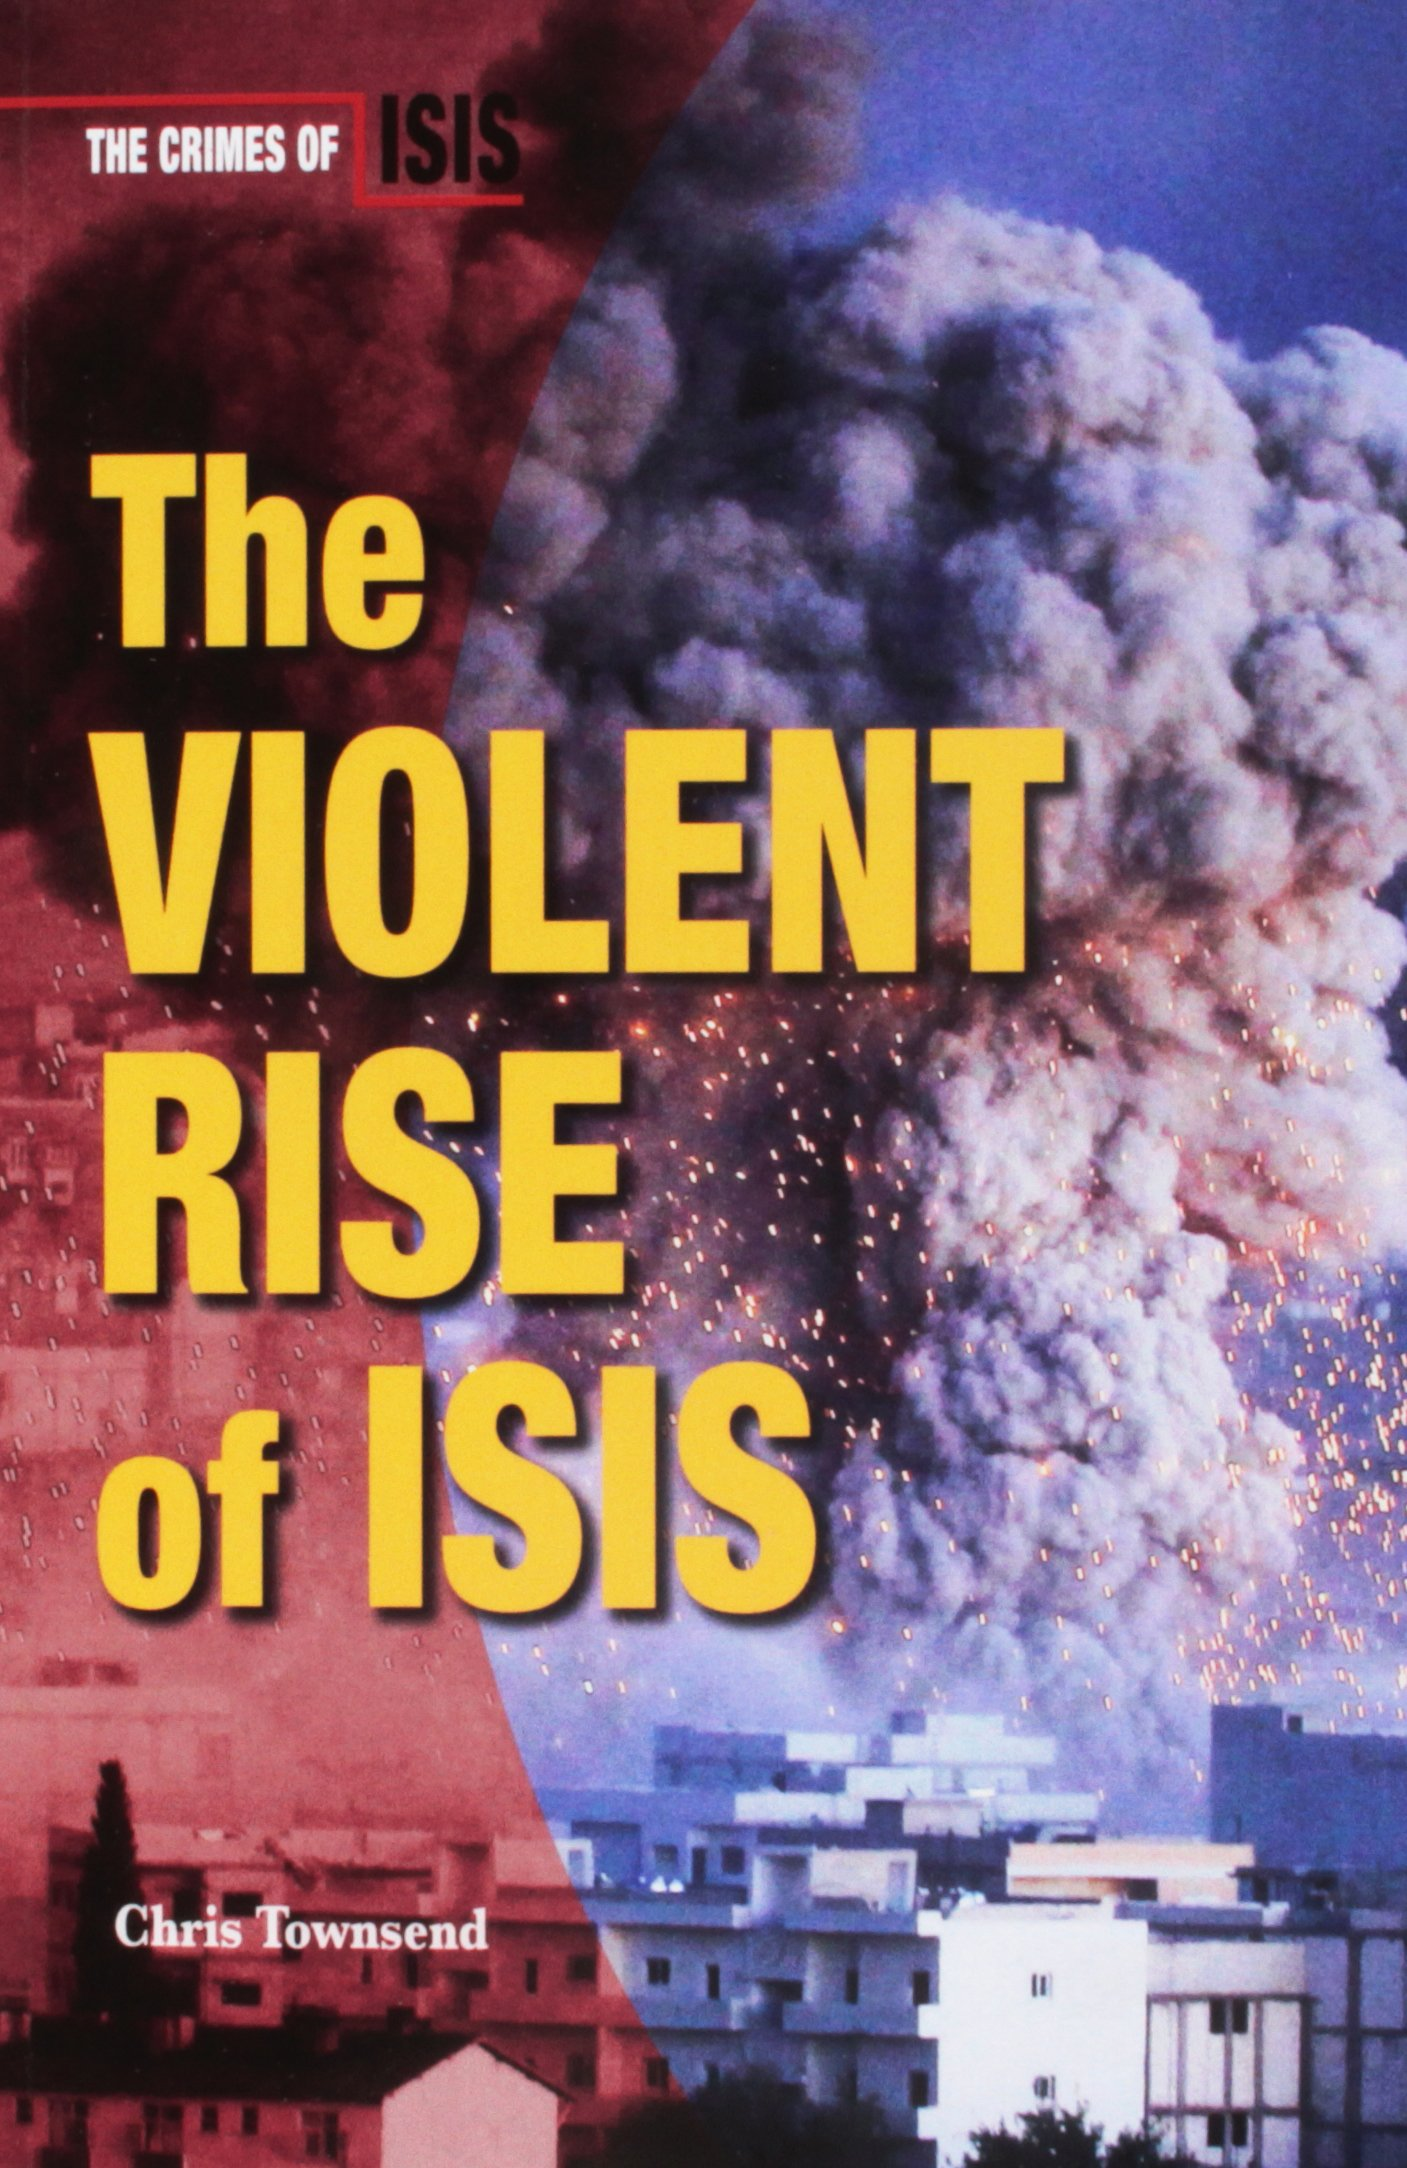 The Violent Rise of ISIS (Crimes of ISIS) pdf